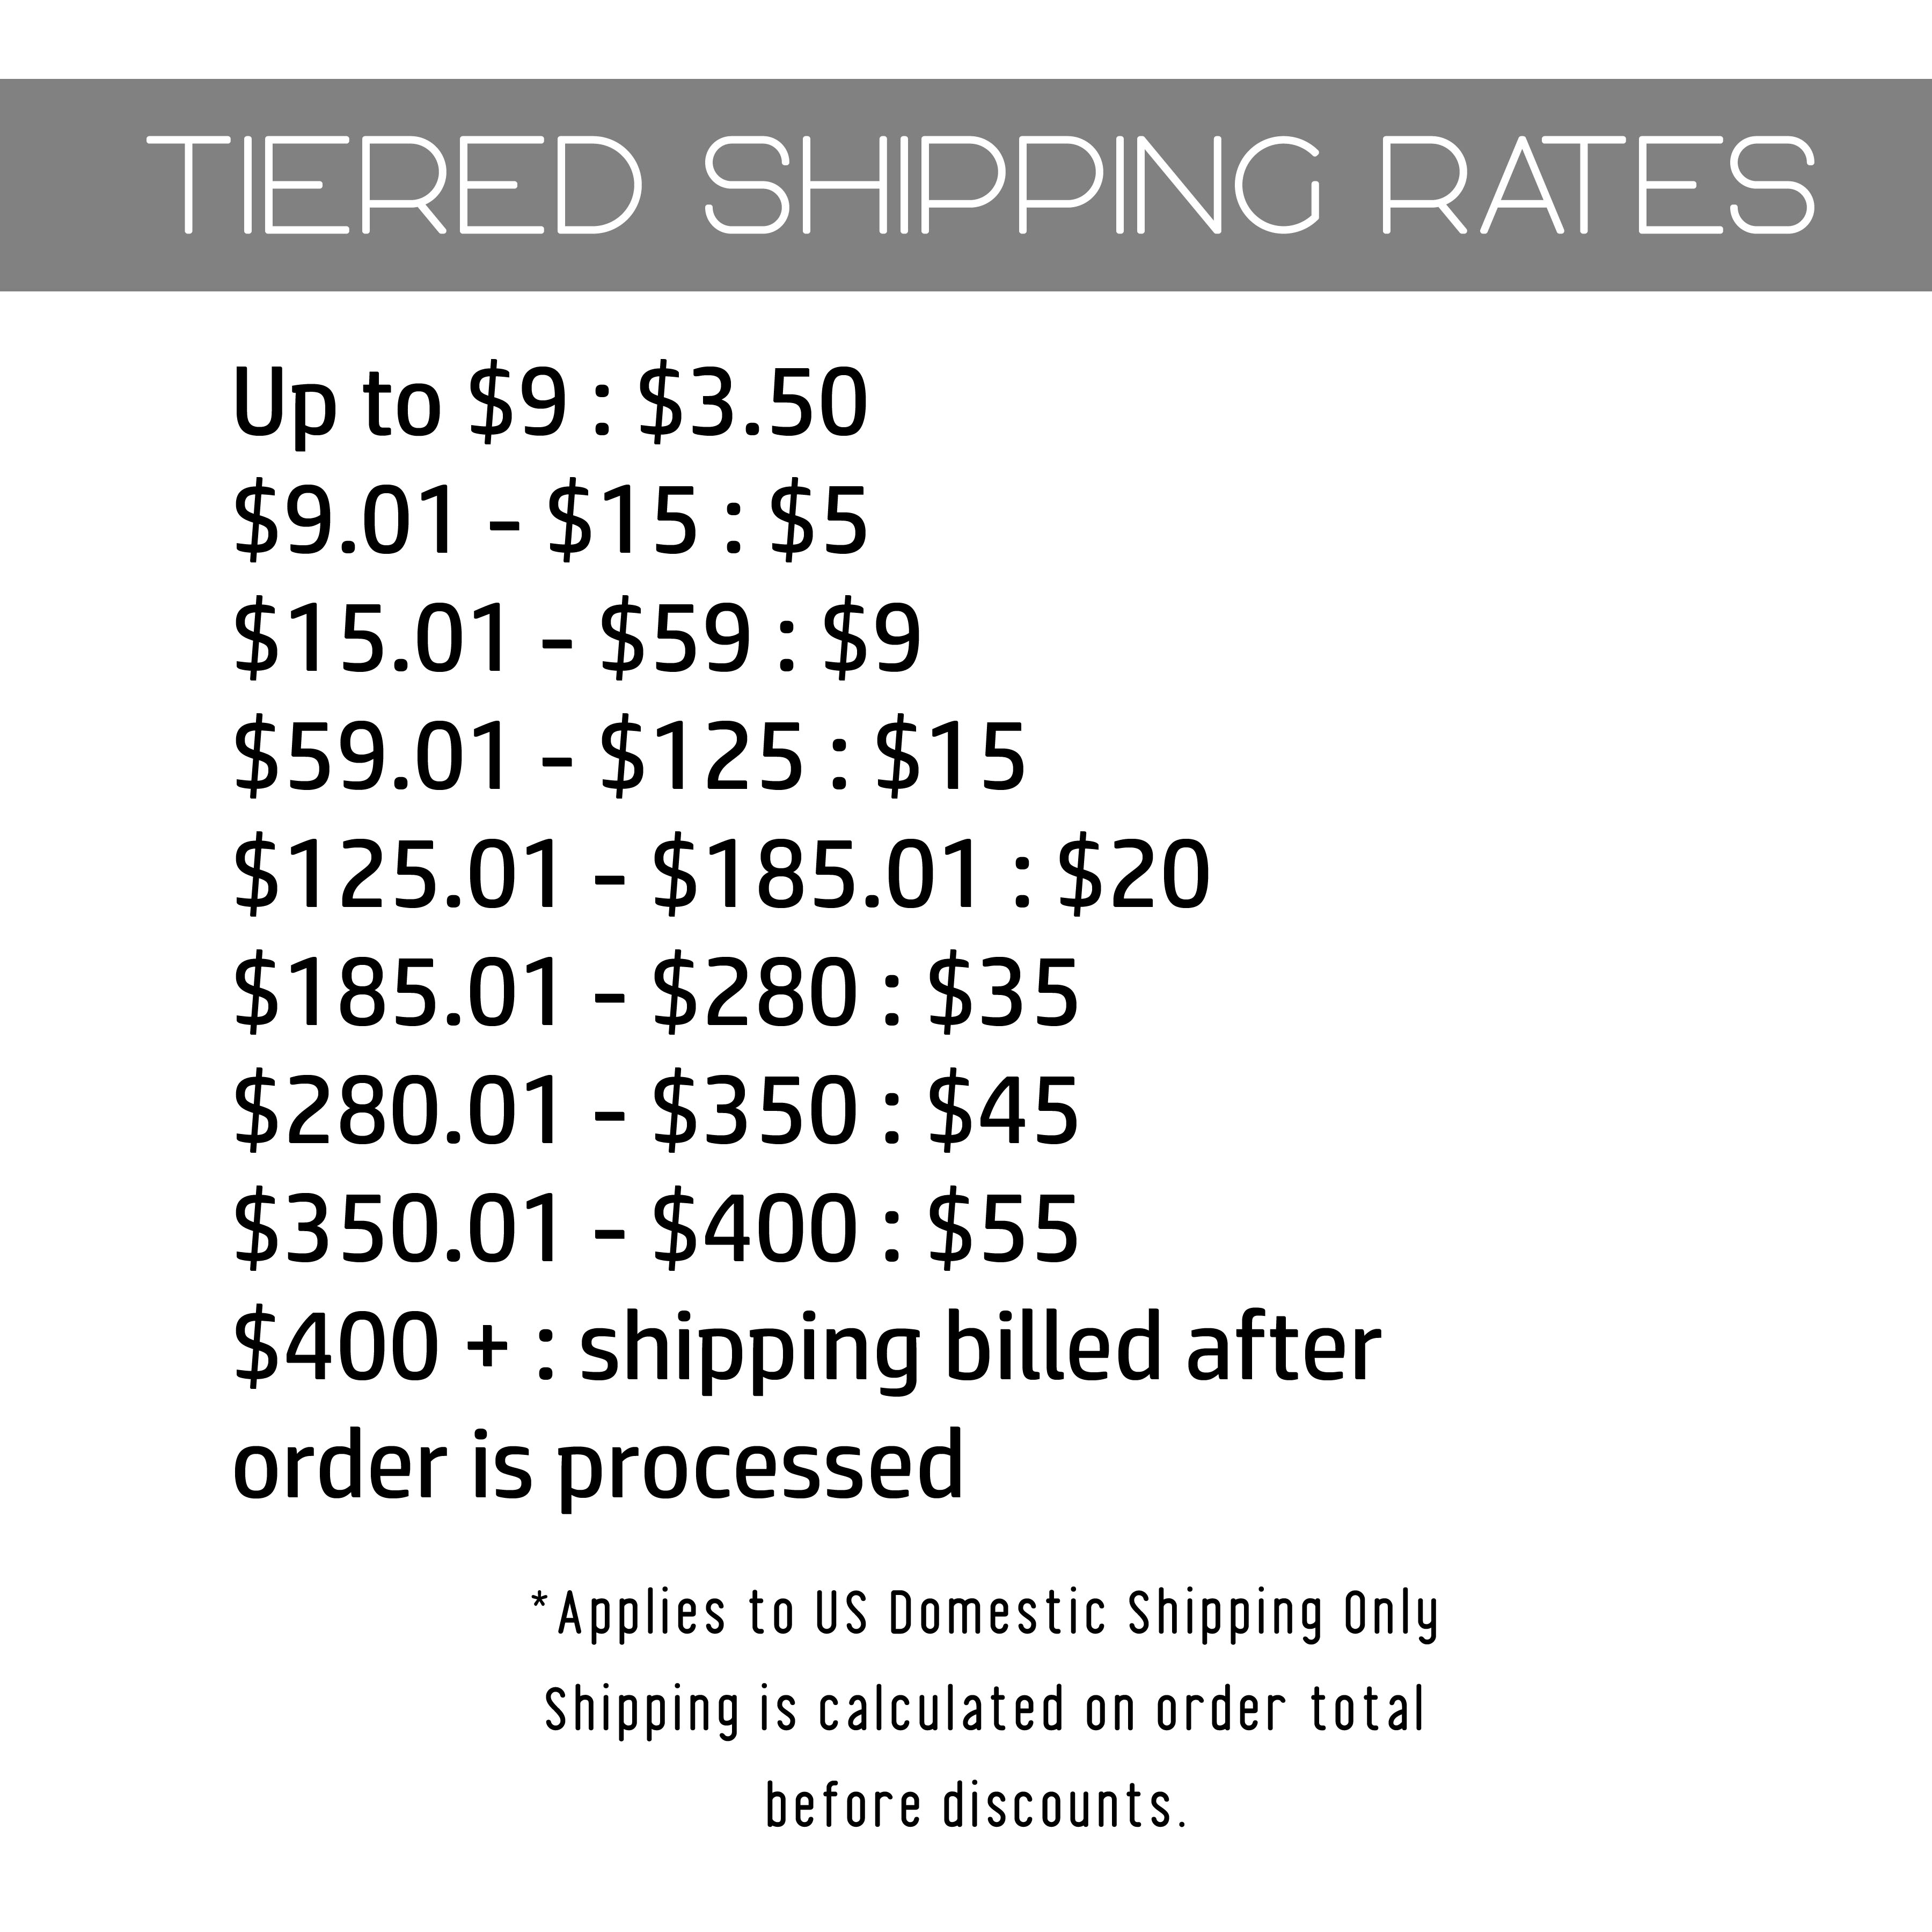 tiered-shipping-rates.jpg